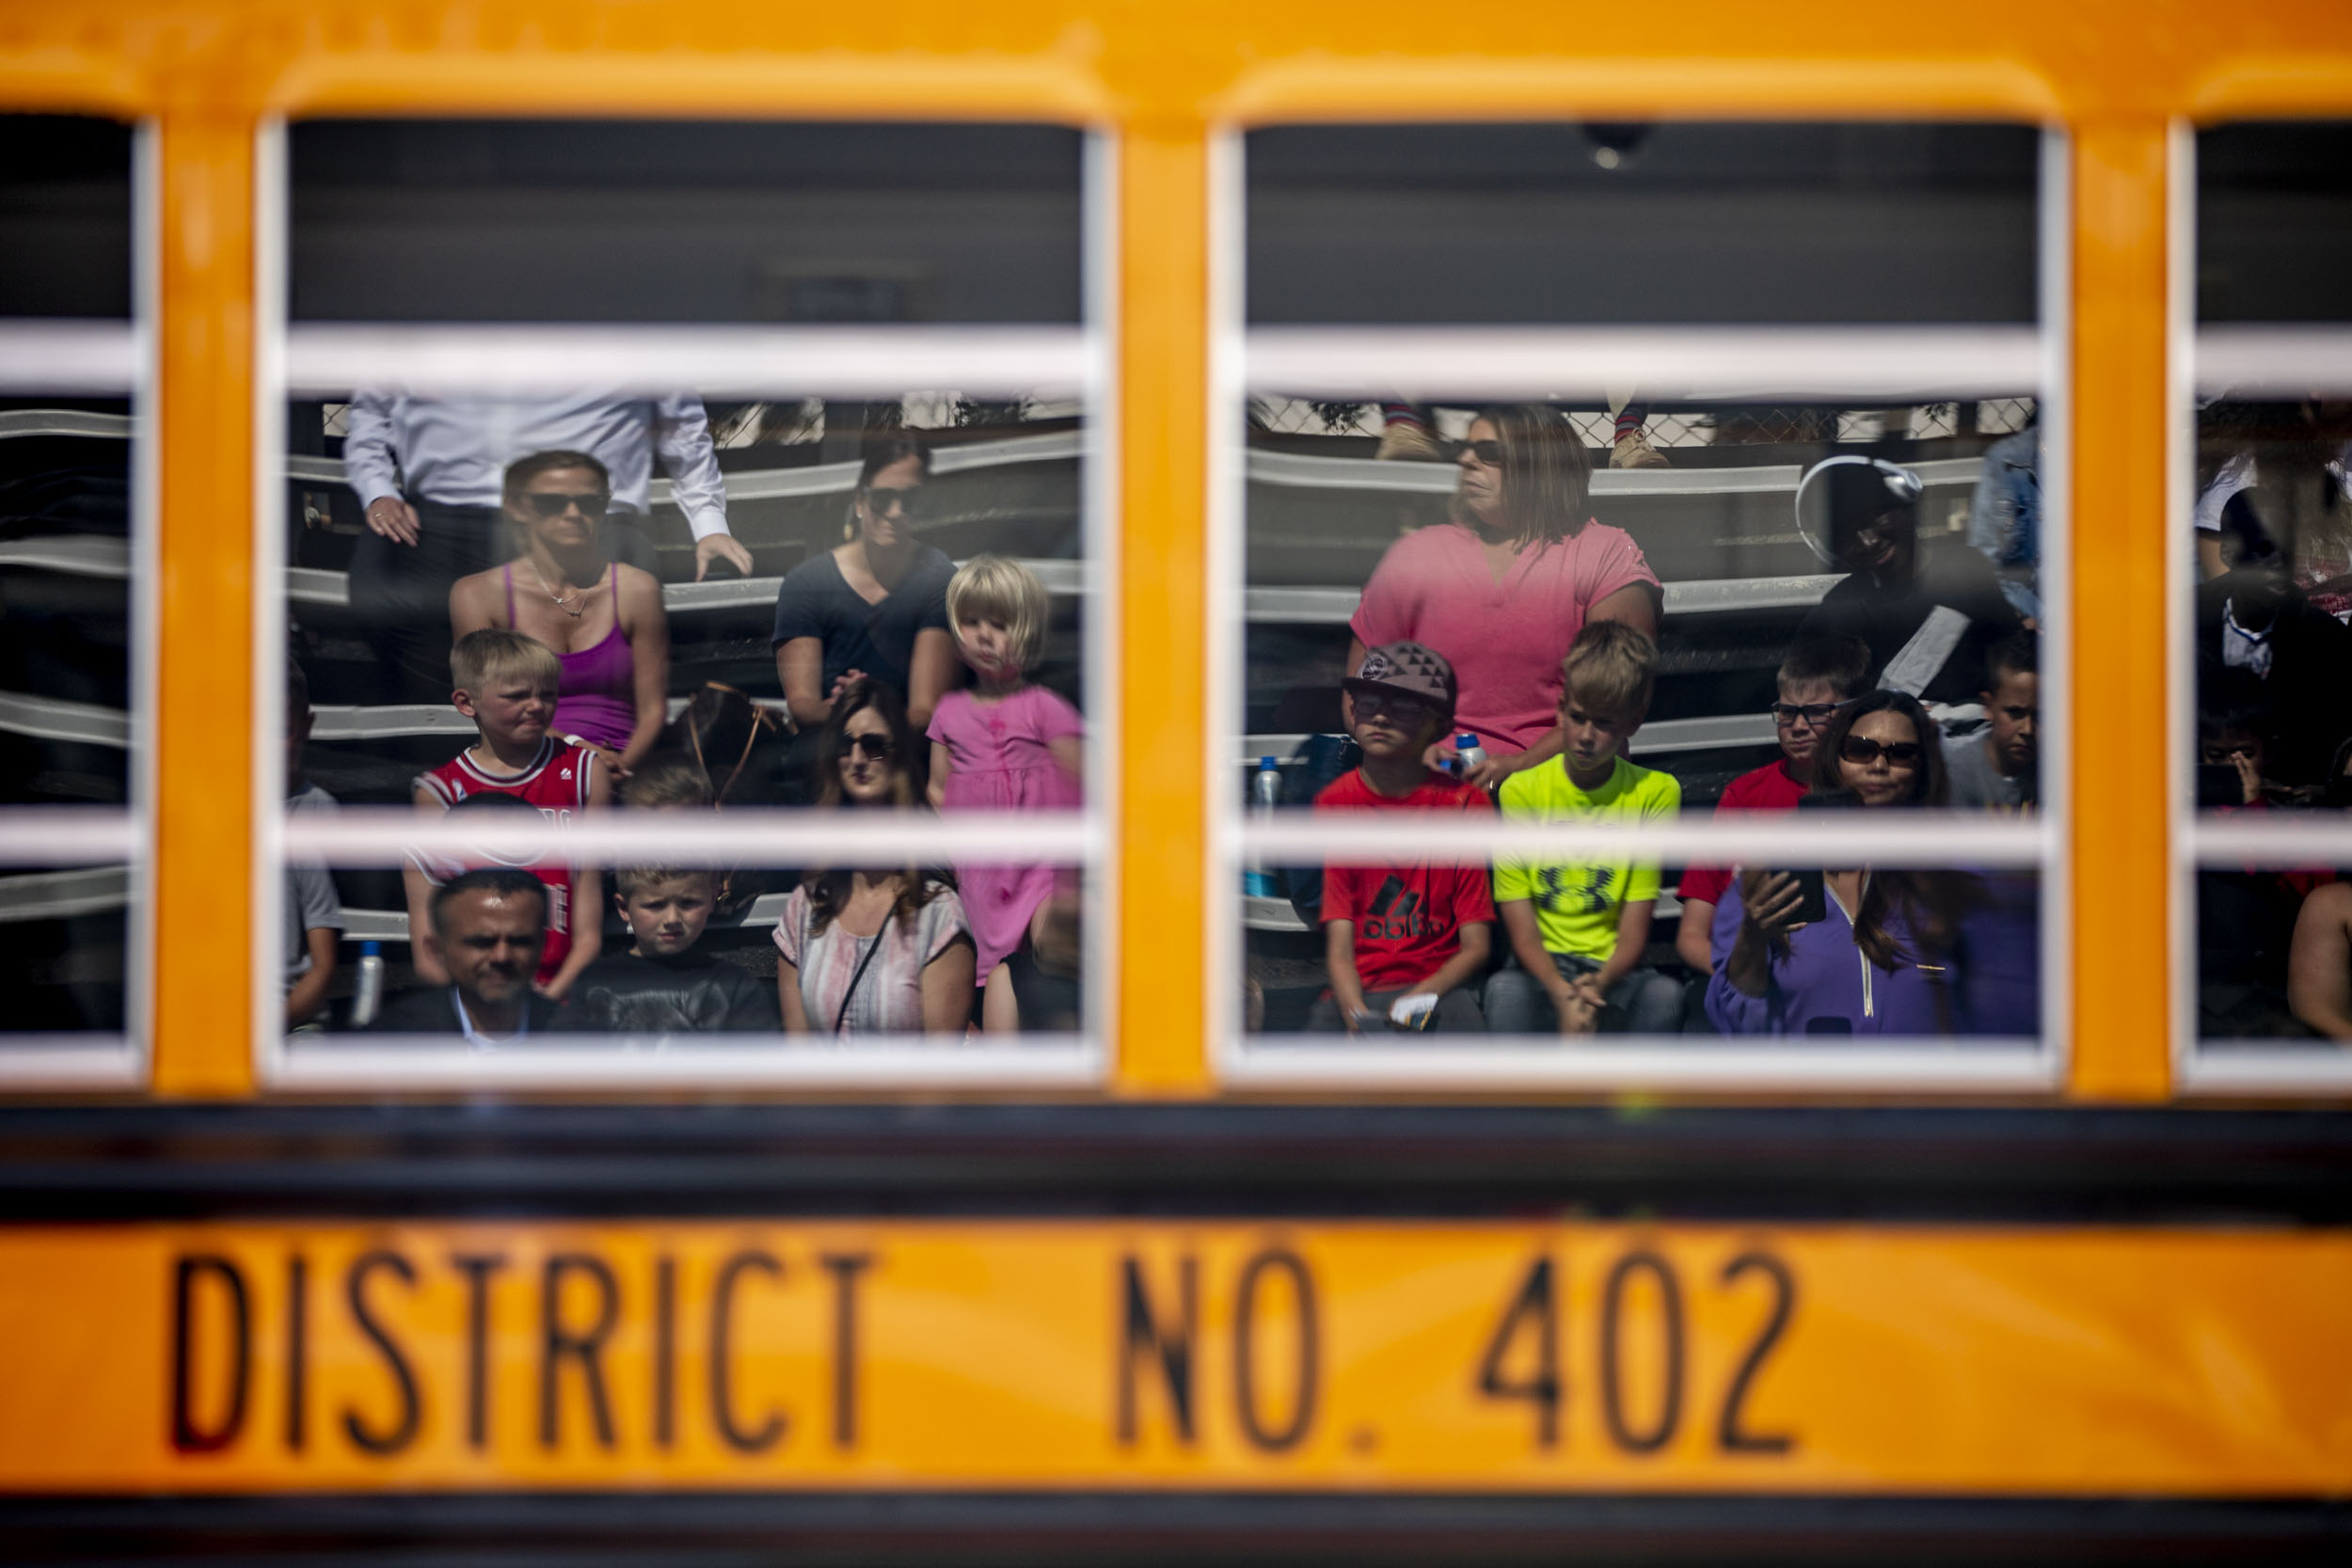 Attendees listen to speakers in front of the first electric school bus in Washington state during an event with Governor Jay Inslee at Franklin Pierce High School in Tacoma on June 17, 2019. (Photo by Dorothy Edwards/Crosscut)